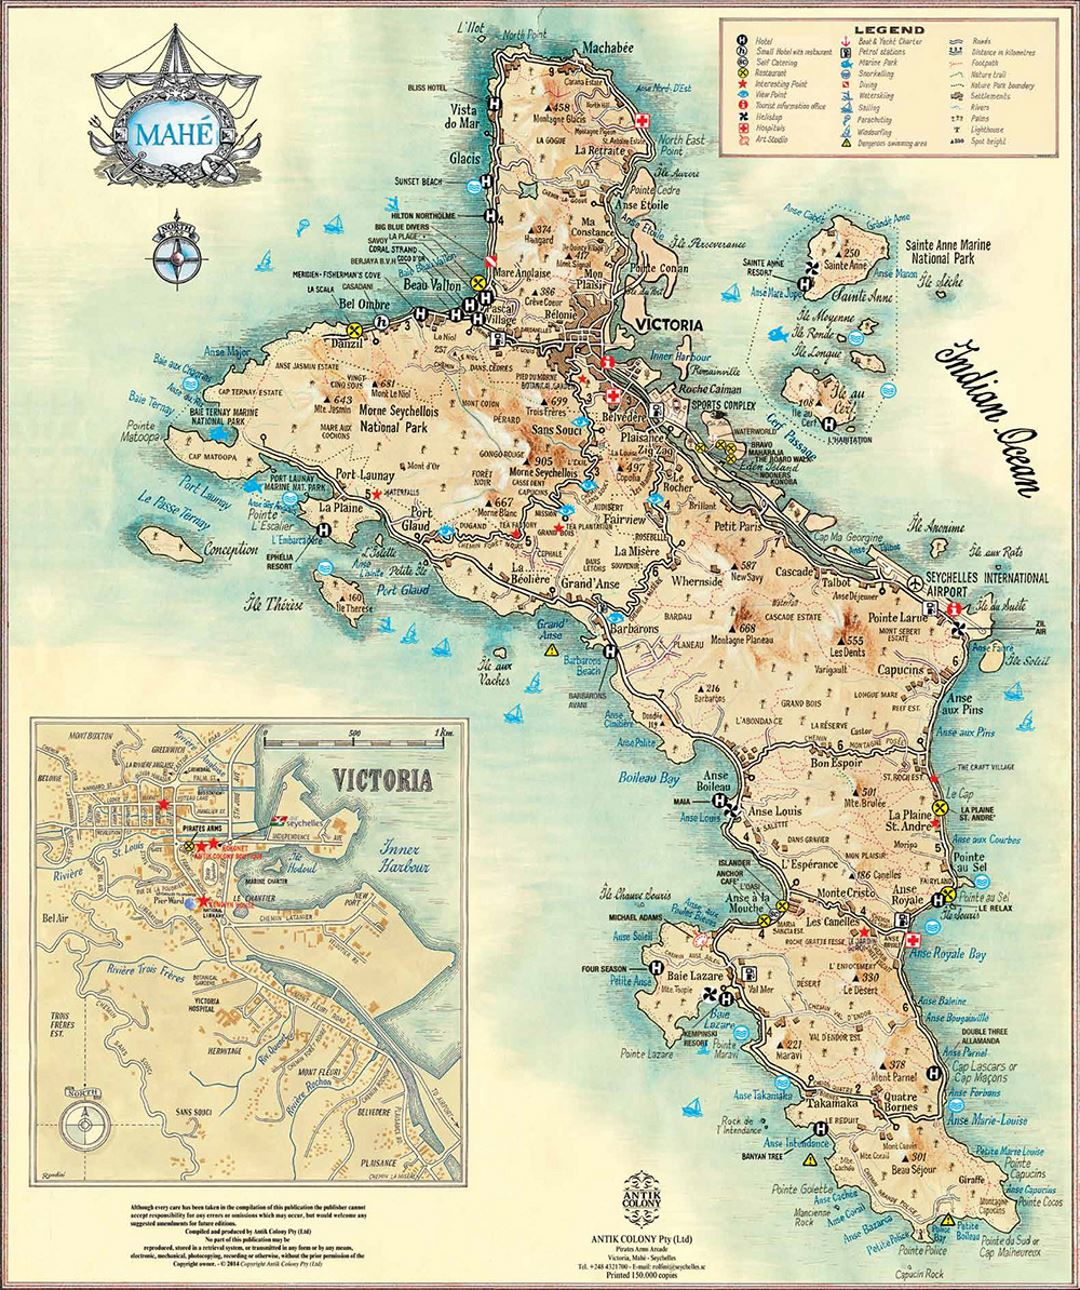 Detailed travel map of Mahe Island, Seychelles with other marks